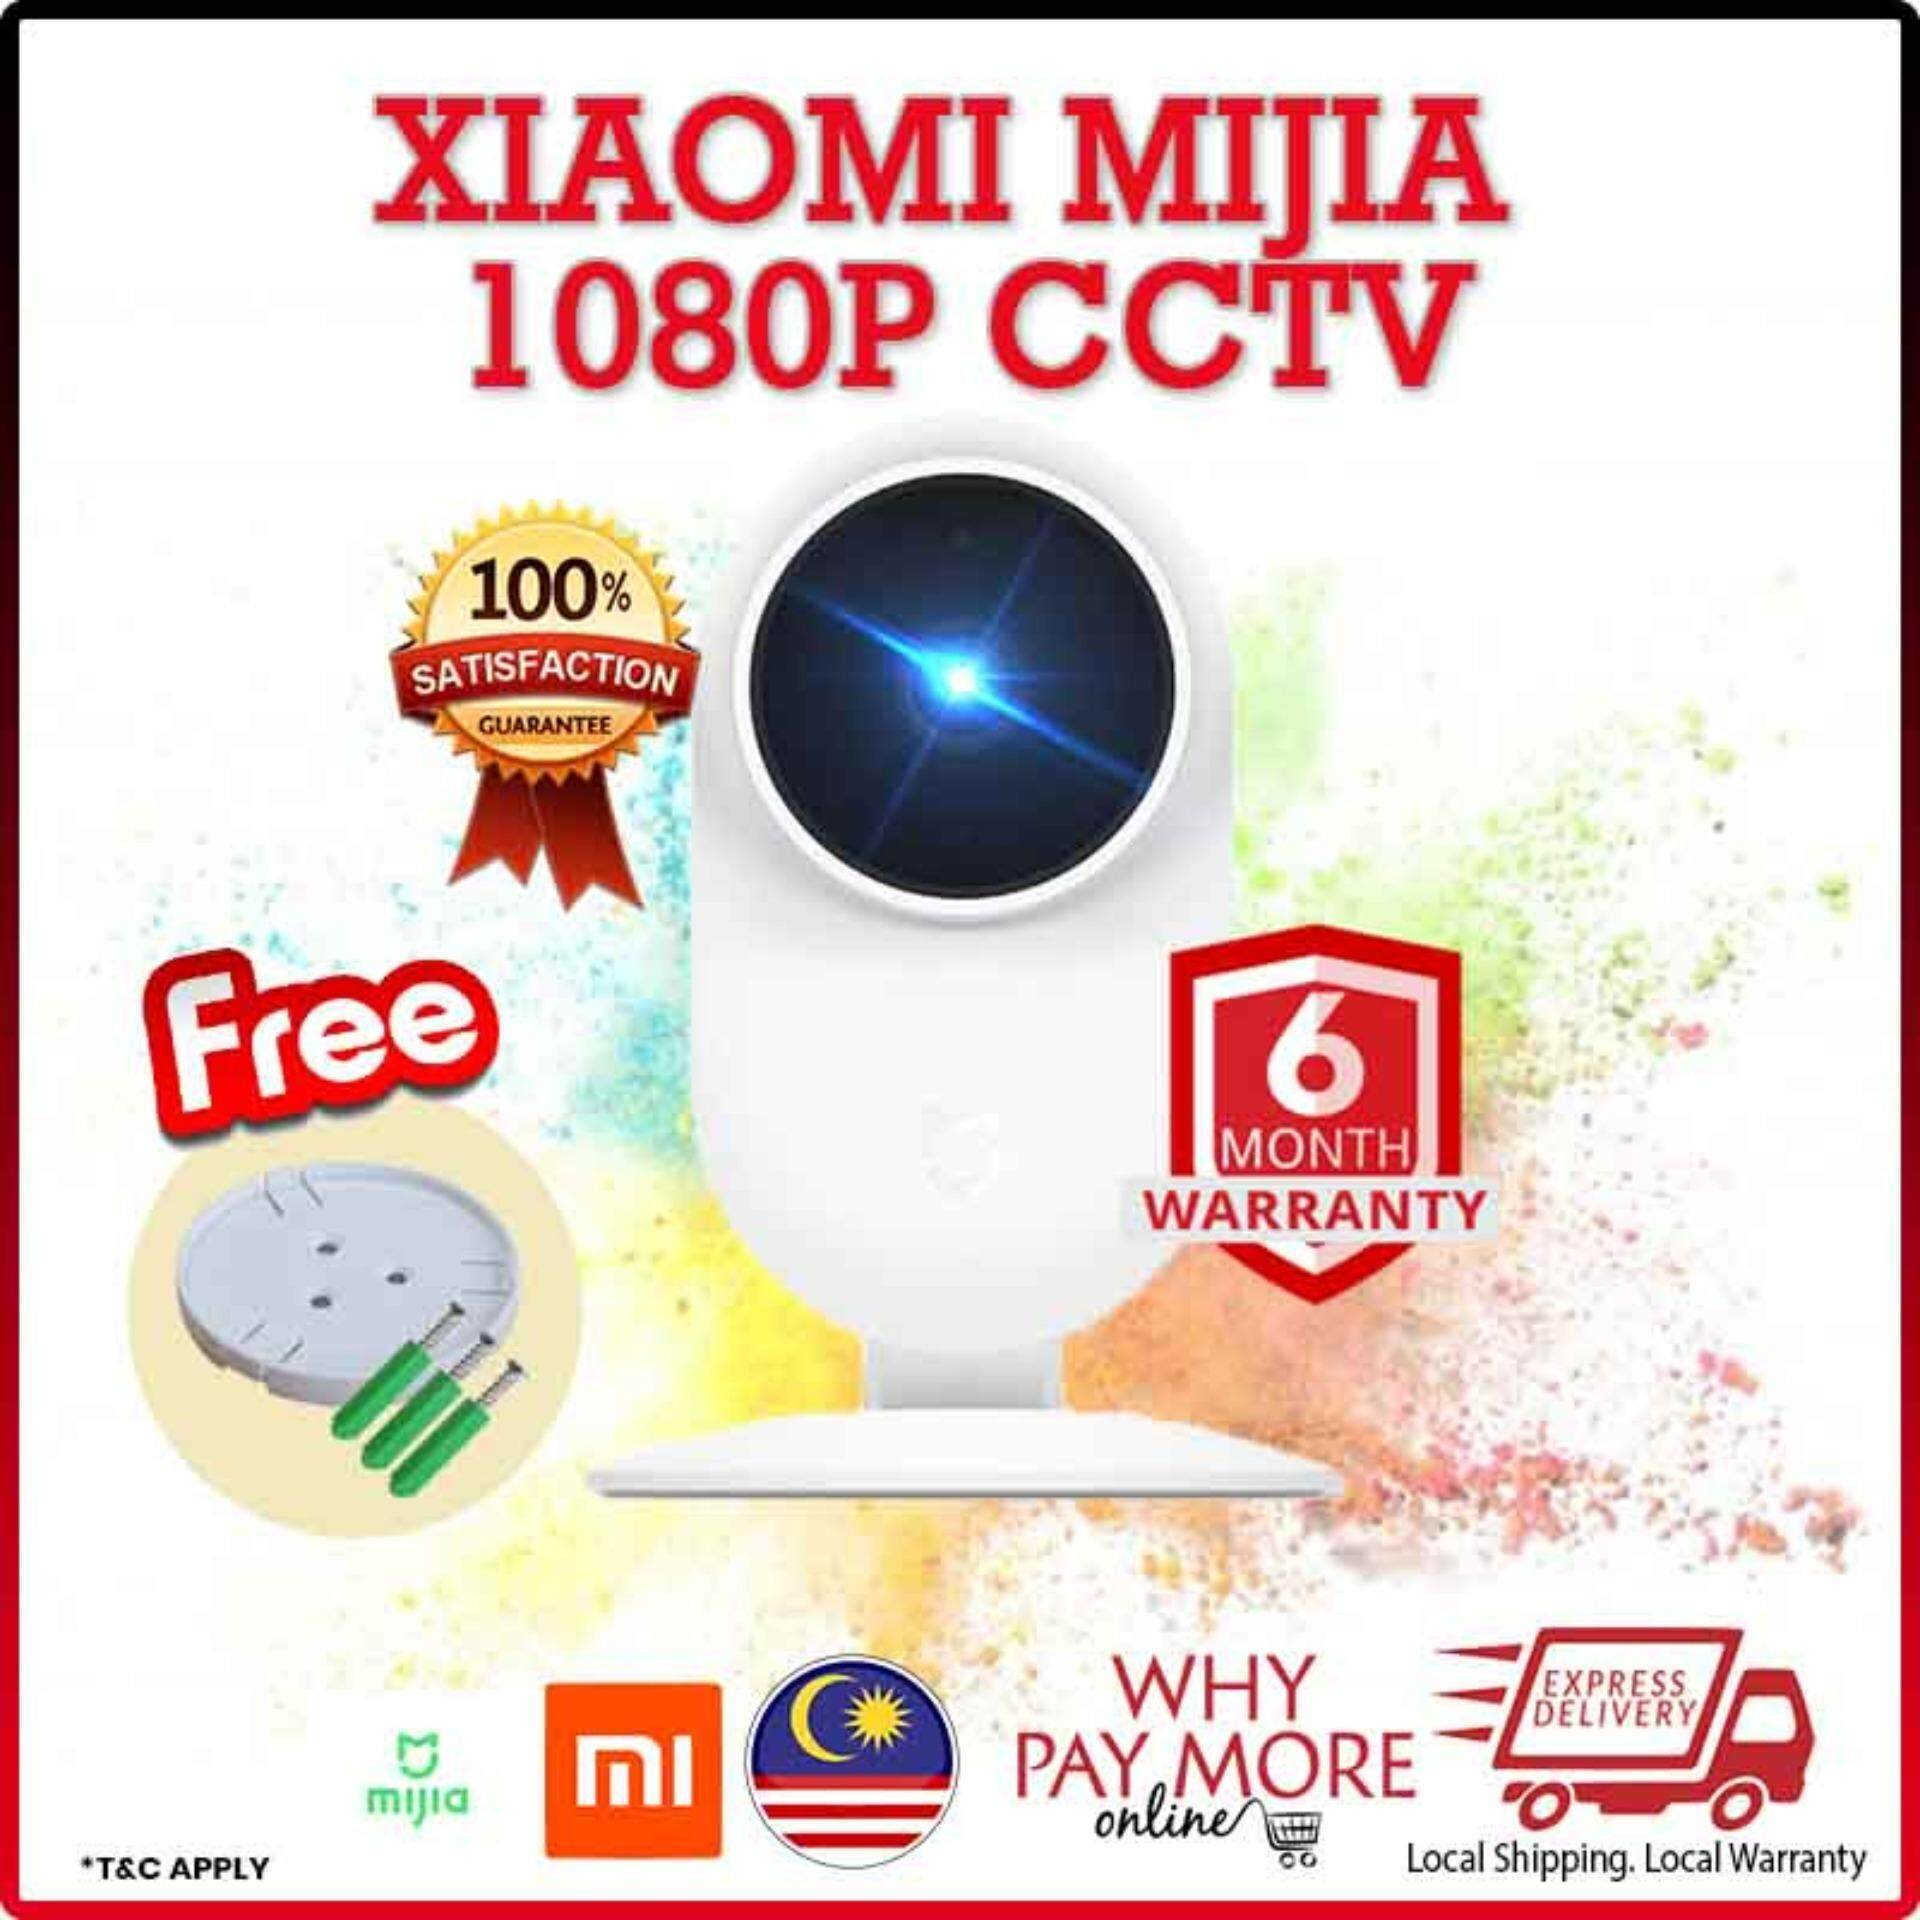 [UPGRADEABLE] XiaoMi Mijia CCTV Mi Home Security Smart Camera 1080P WiFi (SXJ02ZM) IP Camera 2.4G Wifi Mi Night Vision